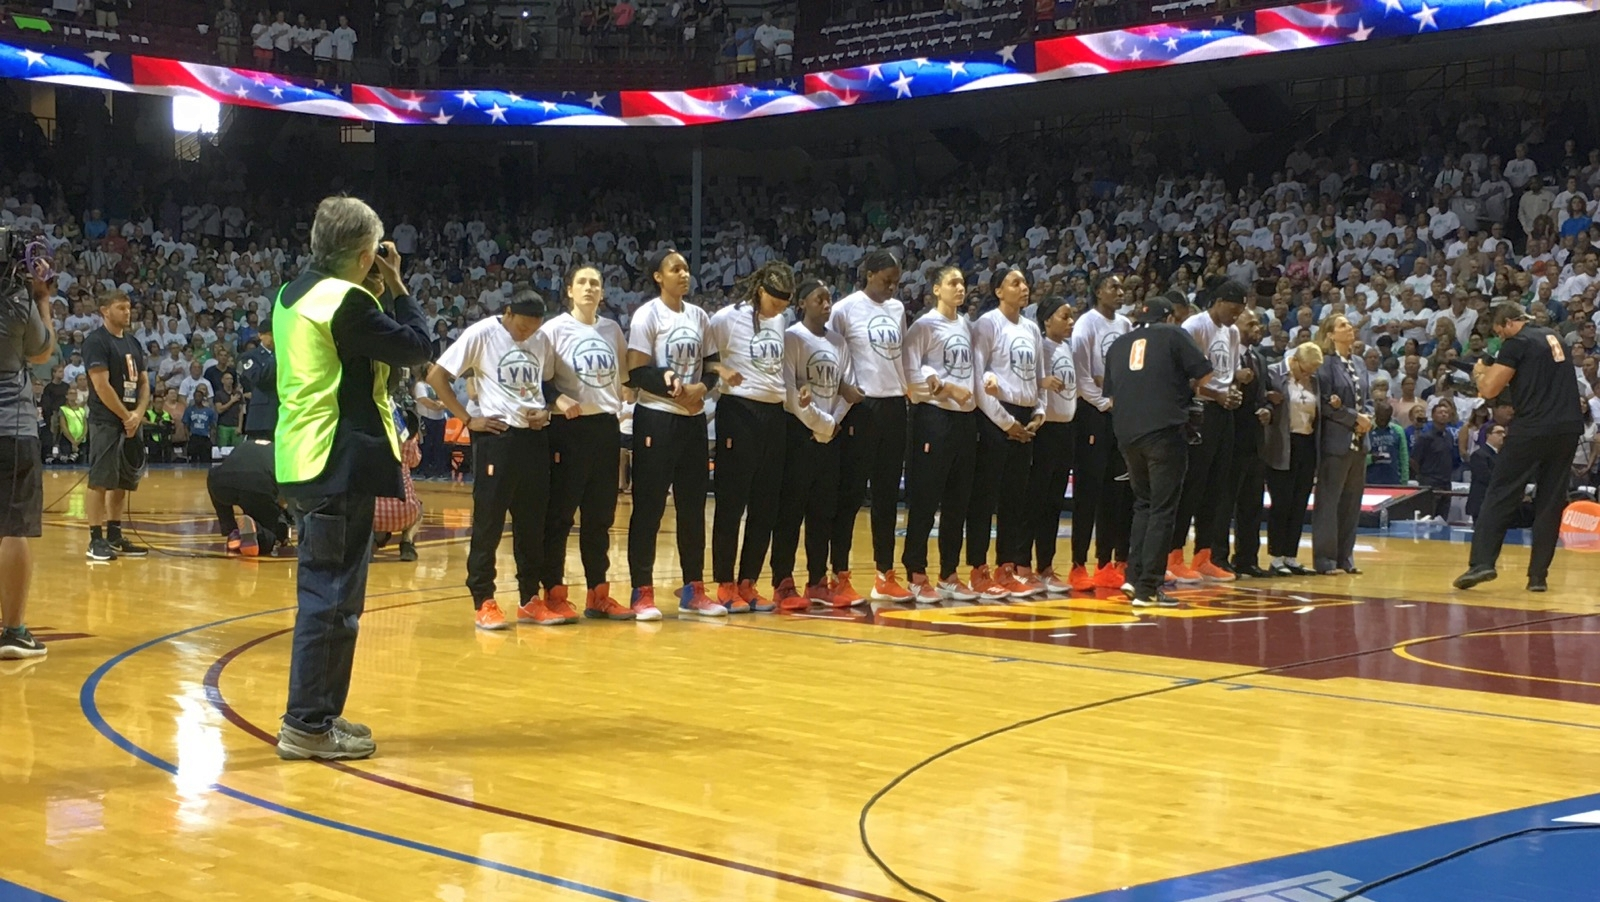 Los Angeles Sparks show solidarity with NFL players, WNBPA issues statement in support of team